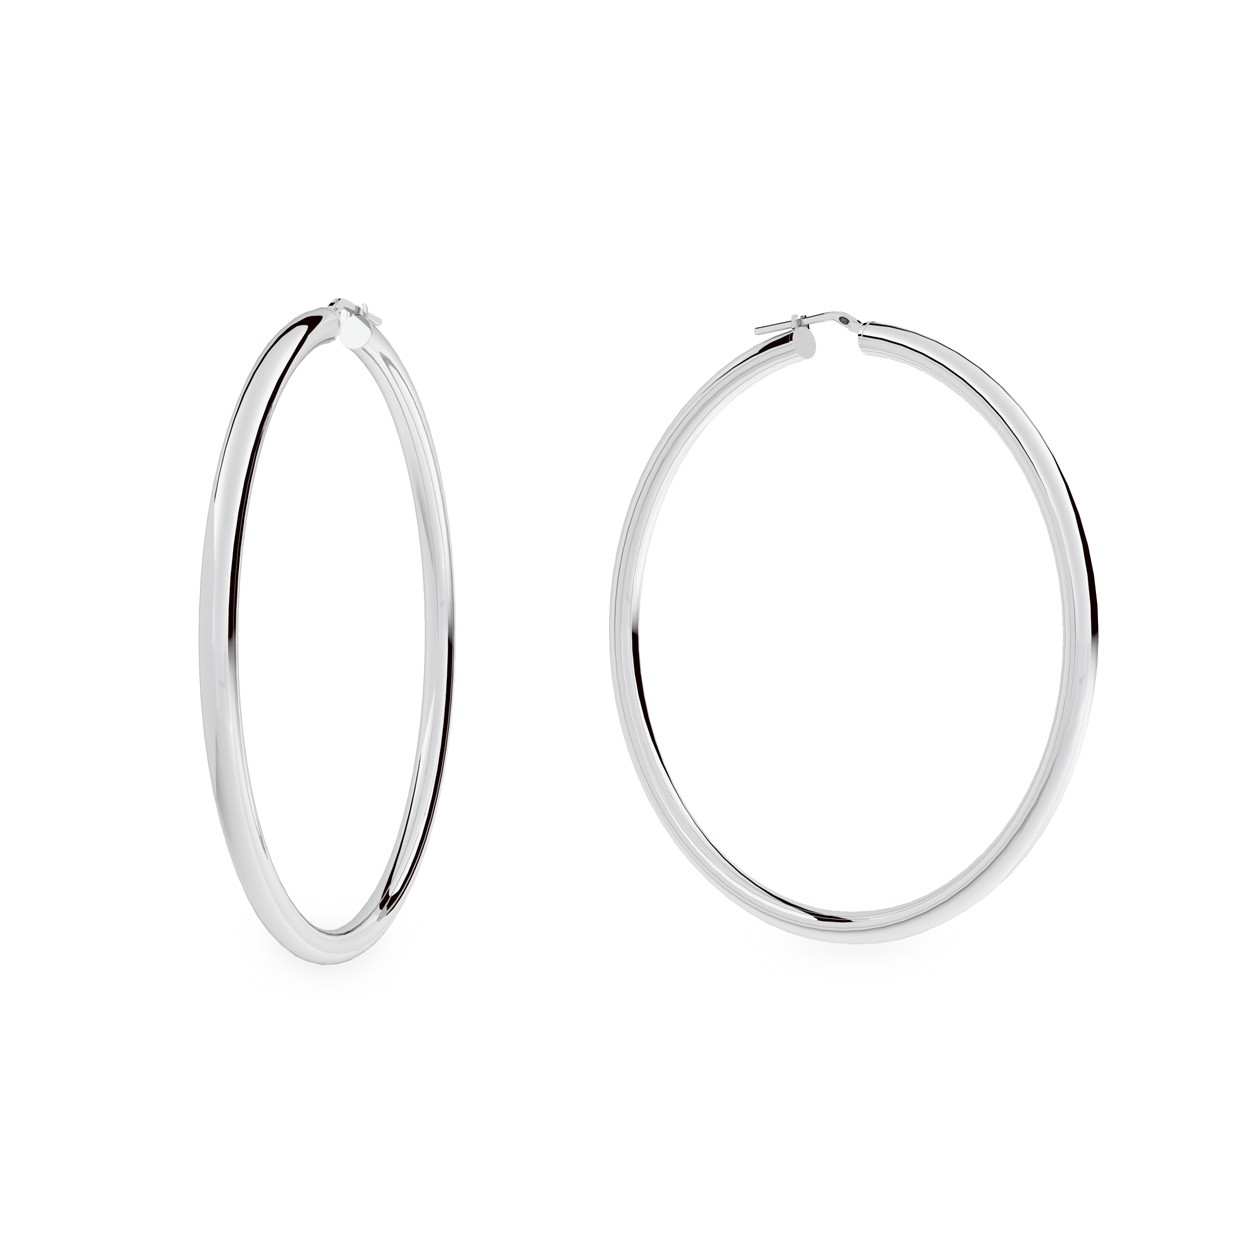 Round hoop earrings 8 cm with clasp, silver 925